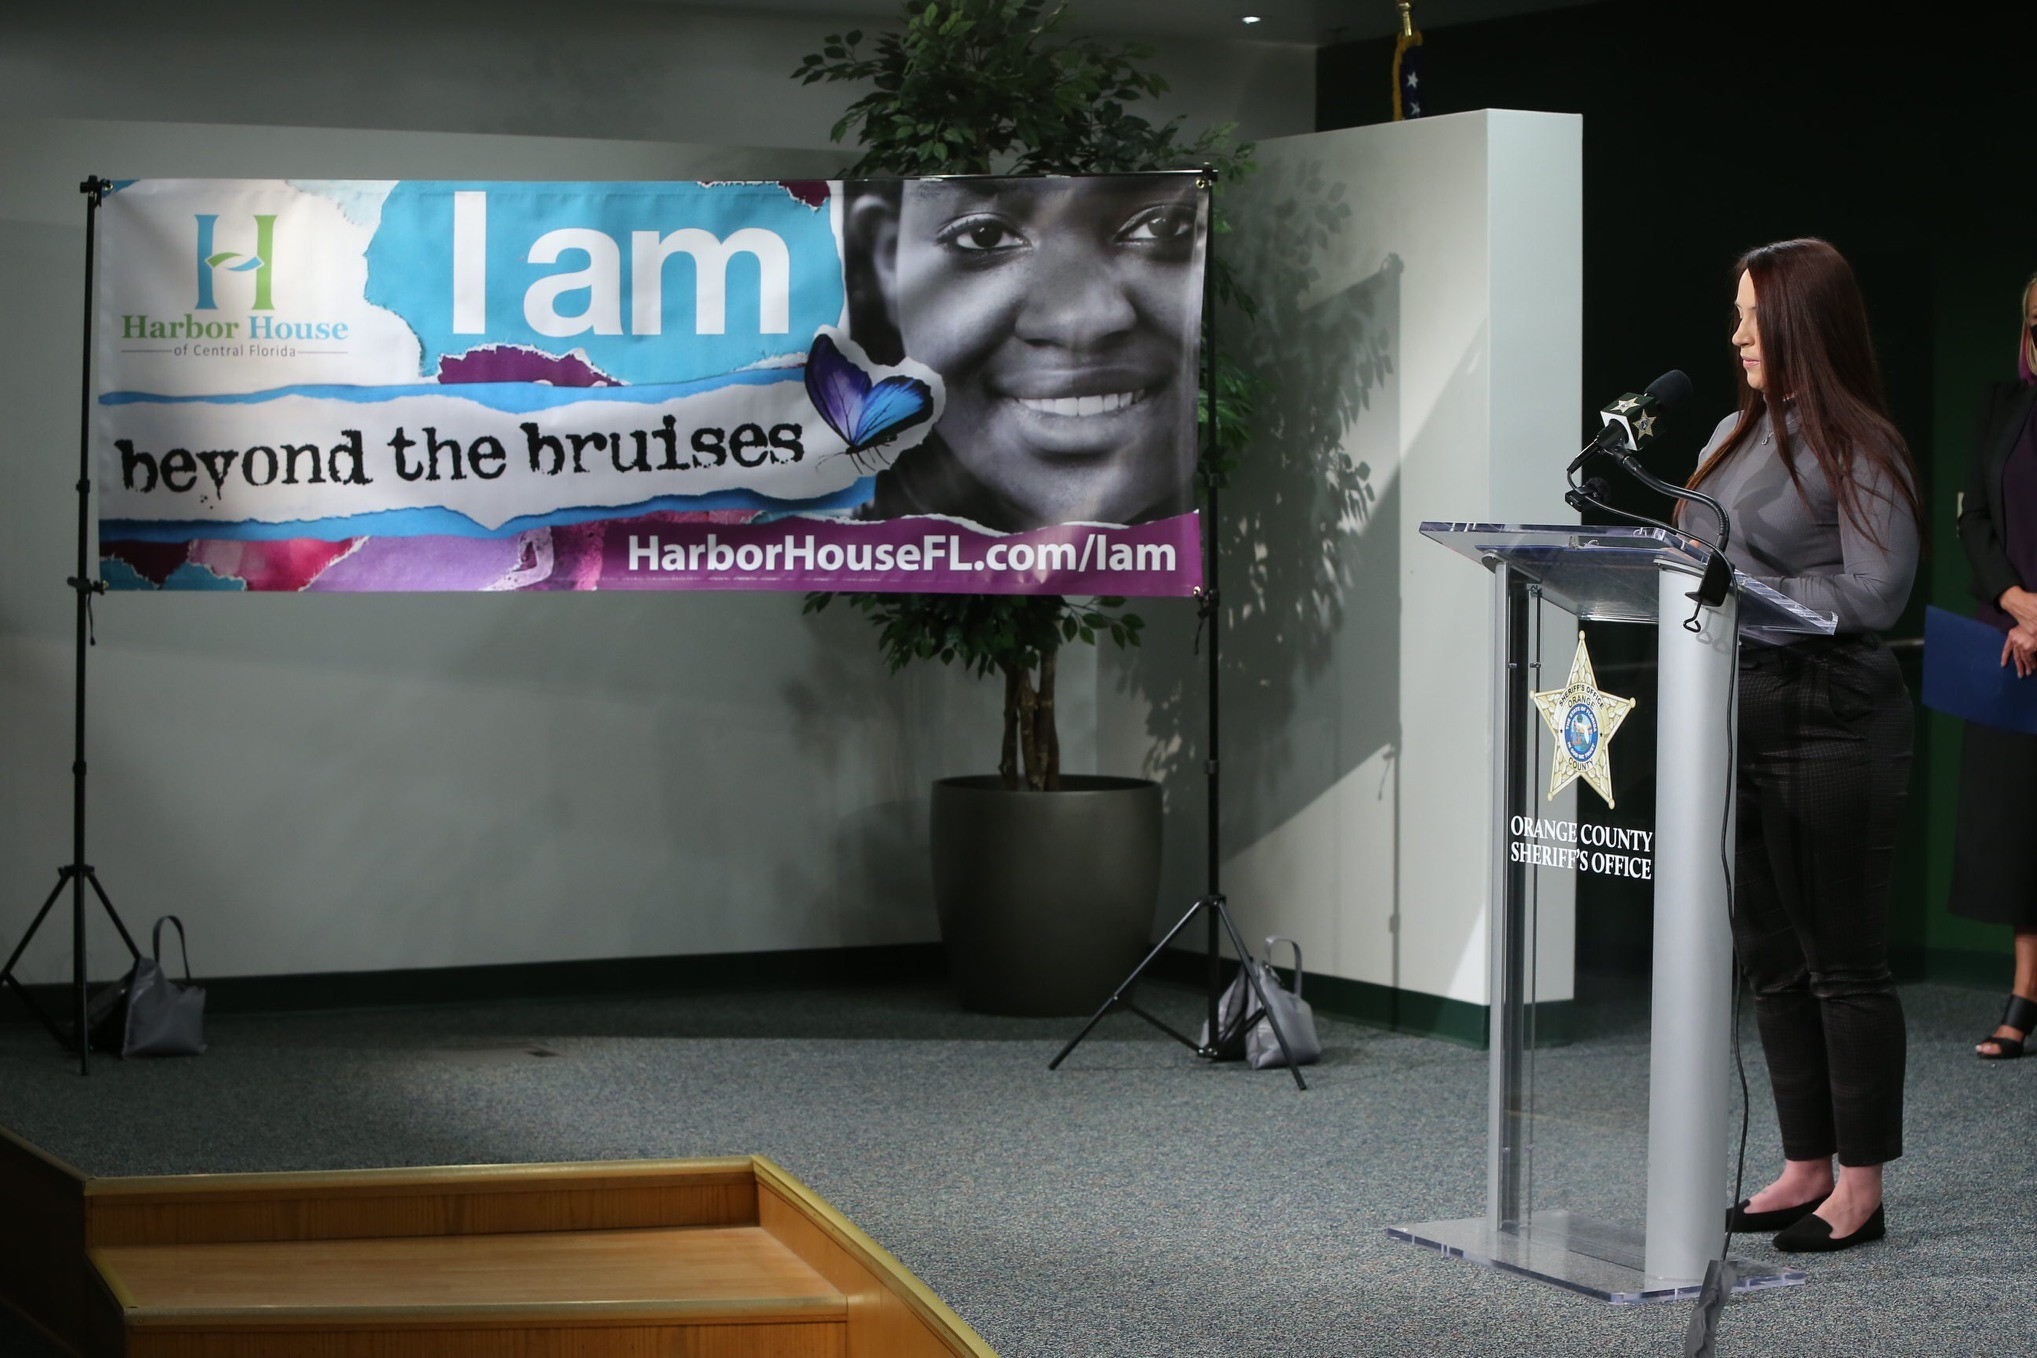 Woman speaks at podium in from of Domestic Violence Awareness Poster